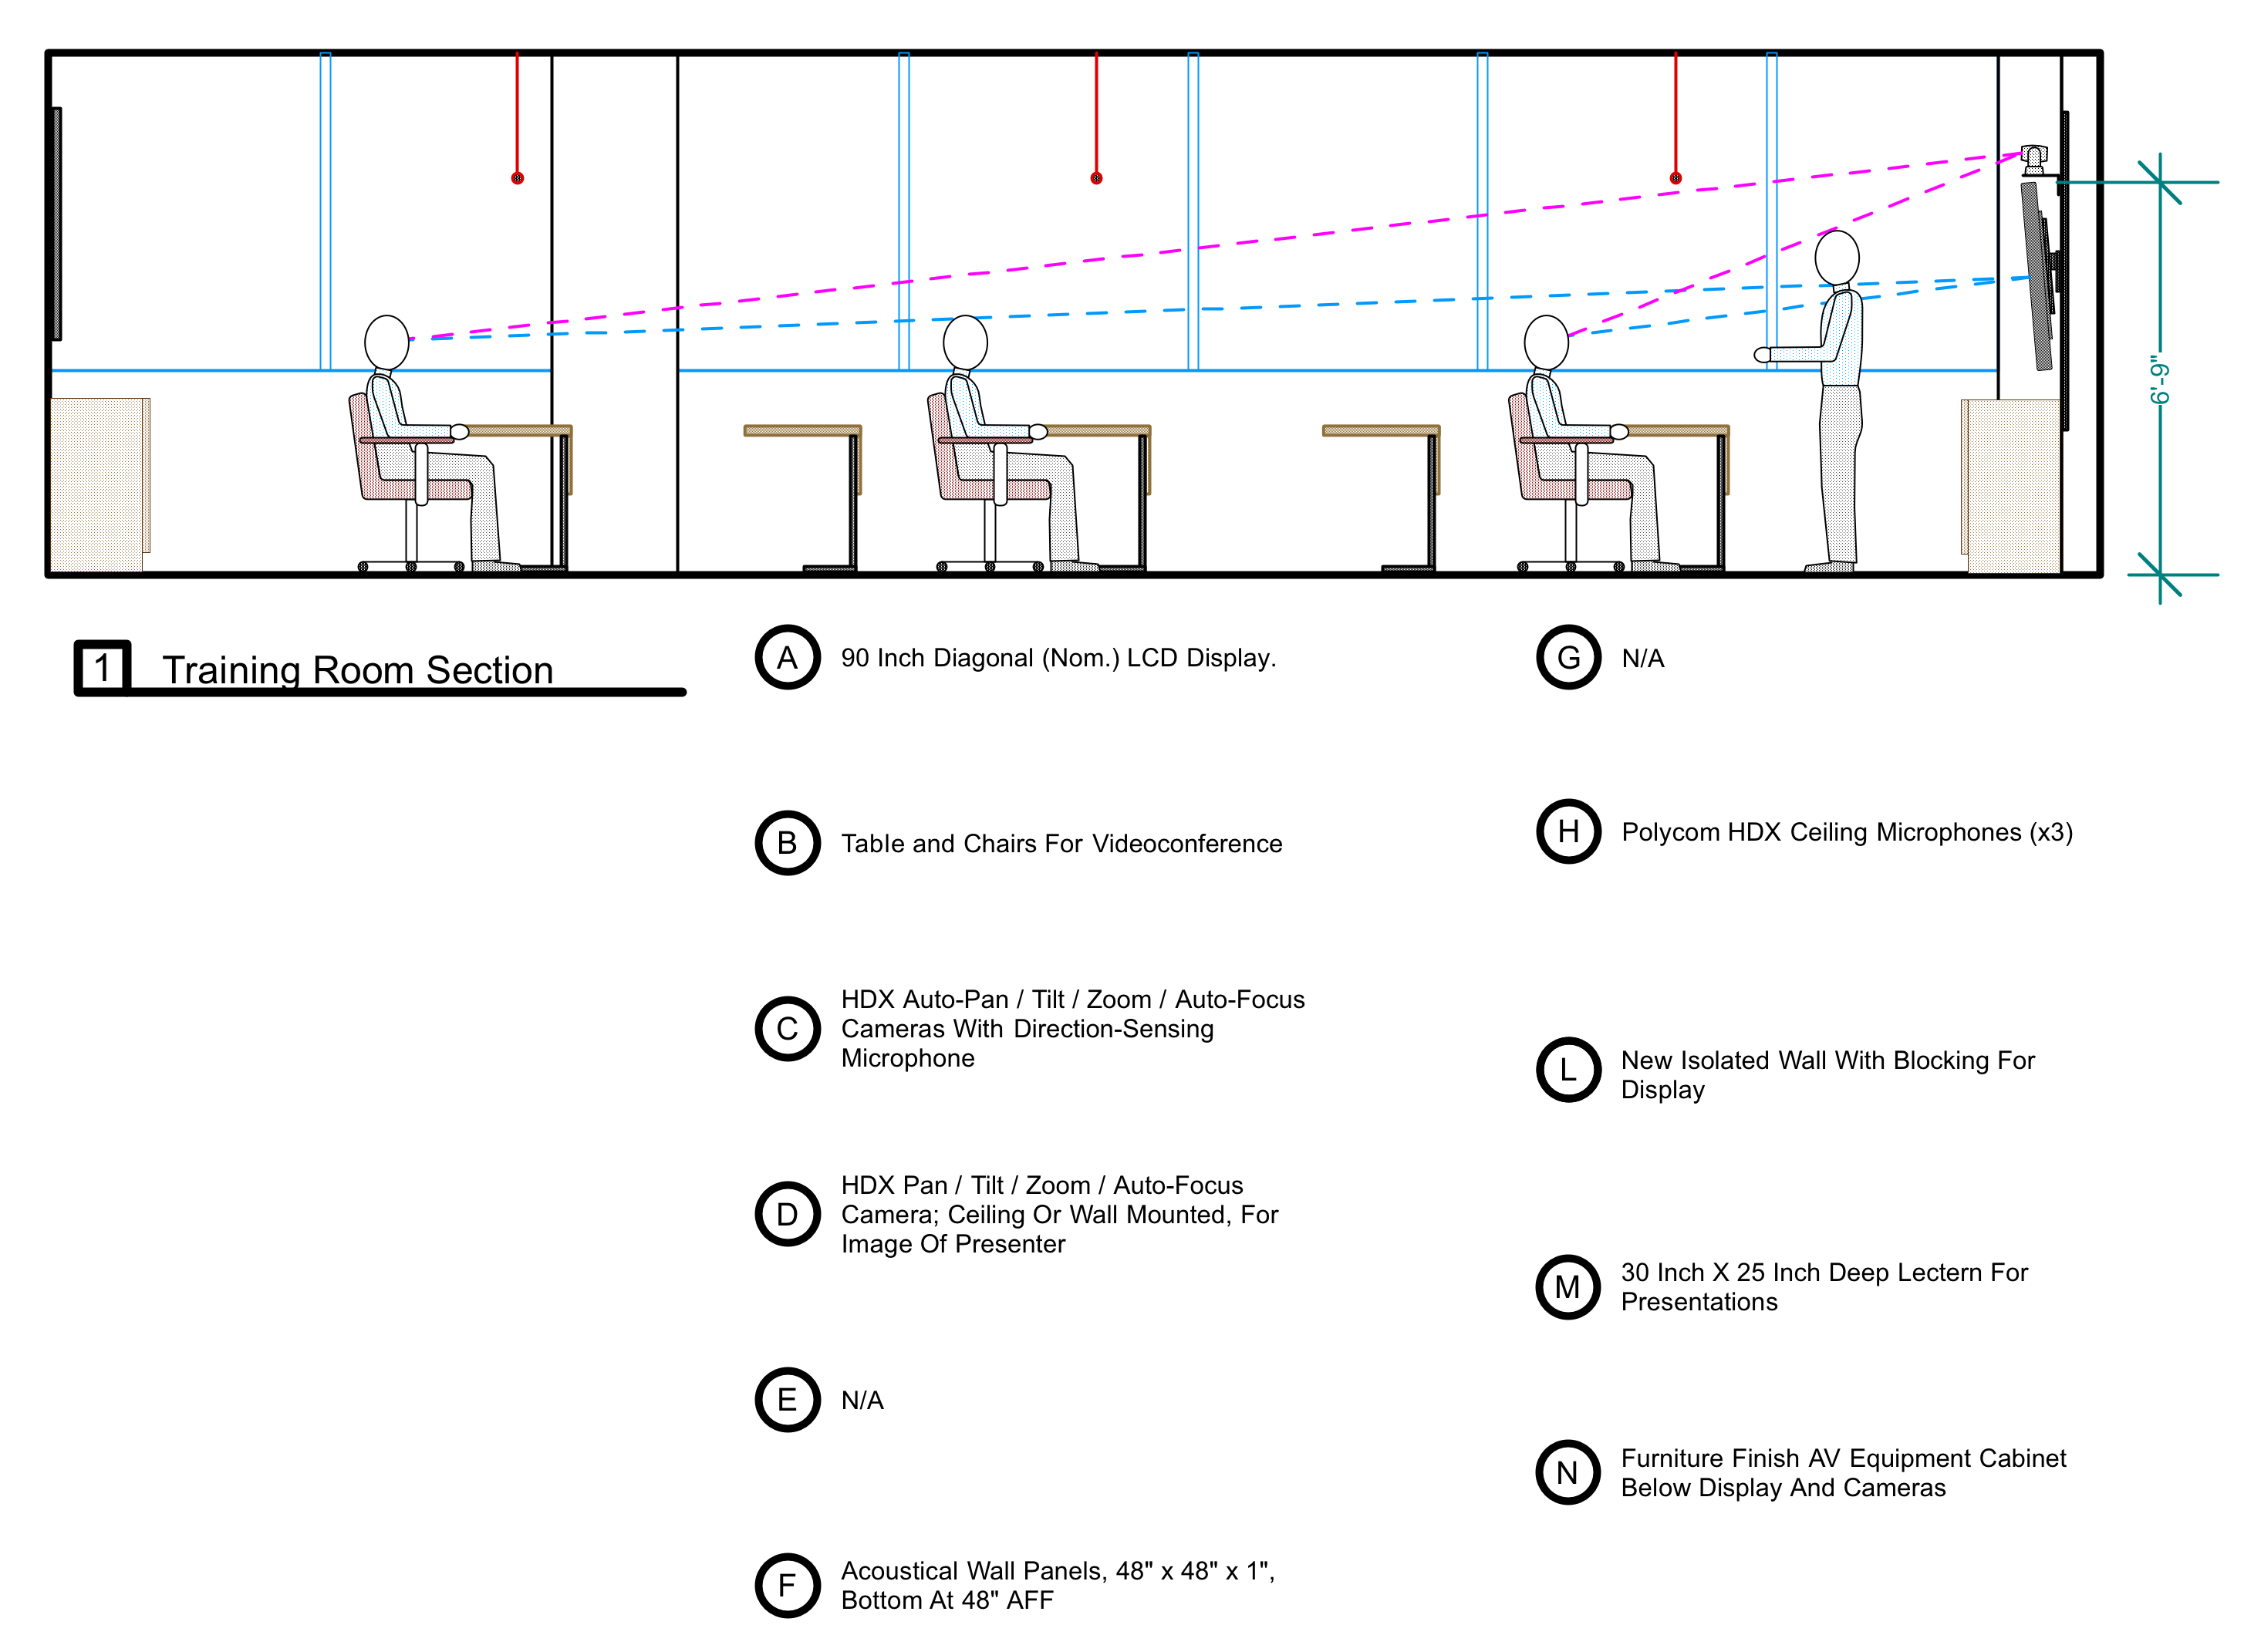 AV System Design Drawings | Global Interactive Solutions LLC